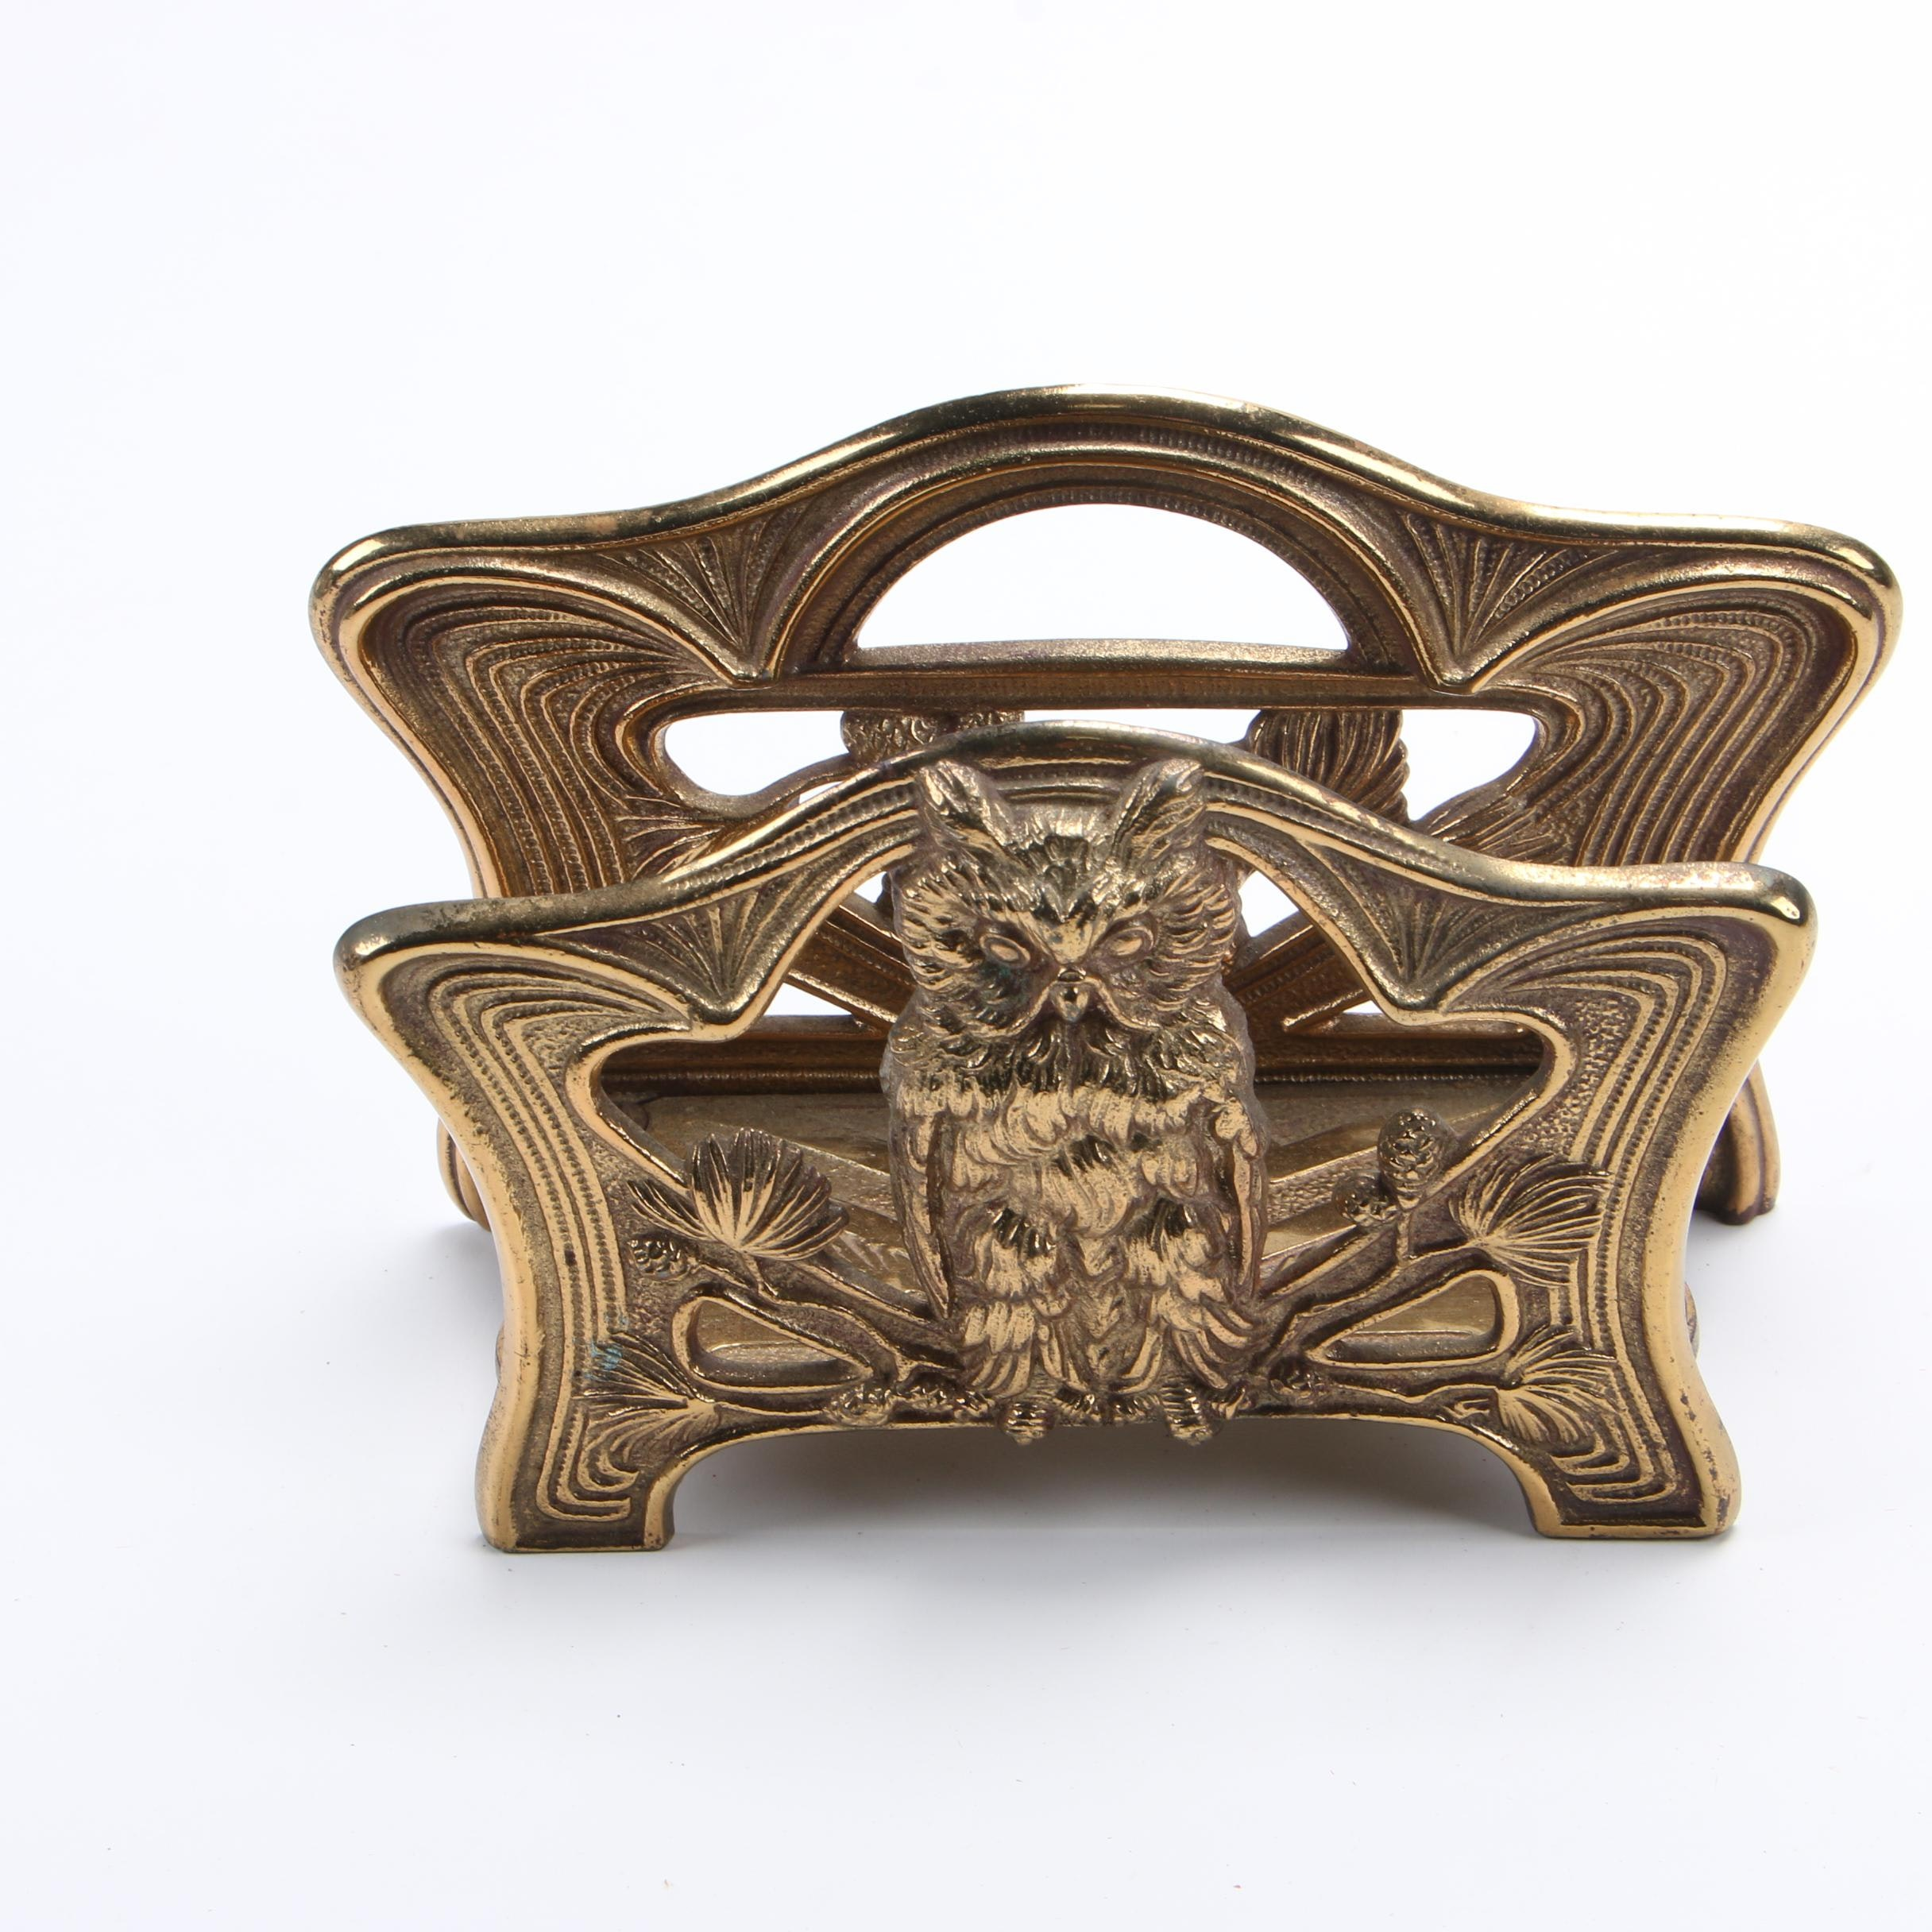 H. L. Judd Co. Art Nouveau Owl Cast Brass Letter Holder, c.1920s